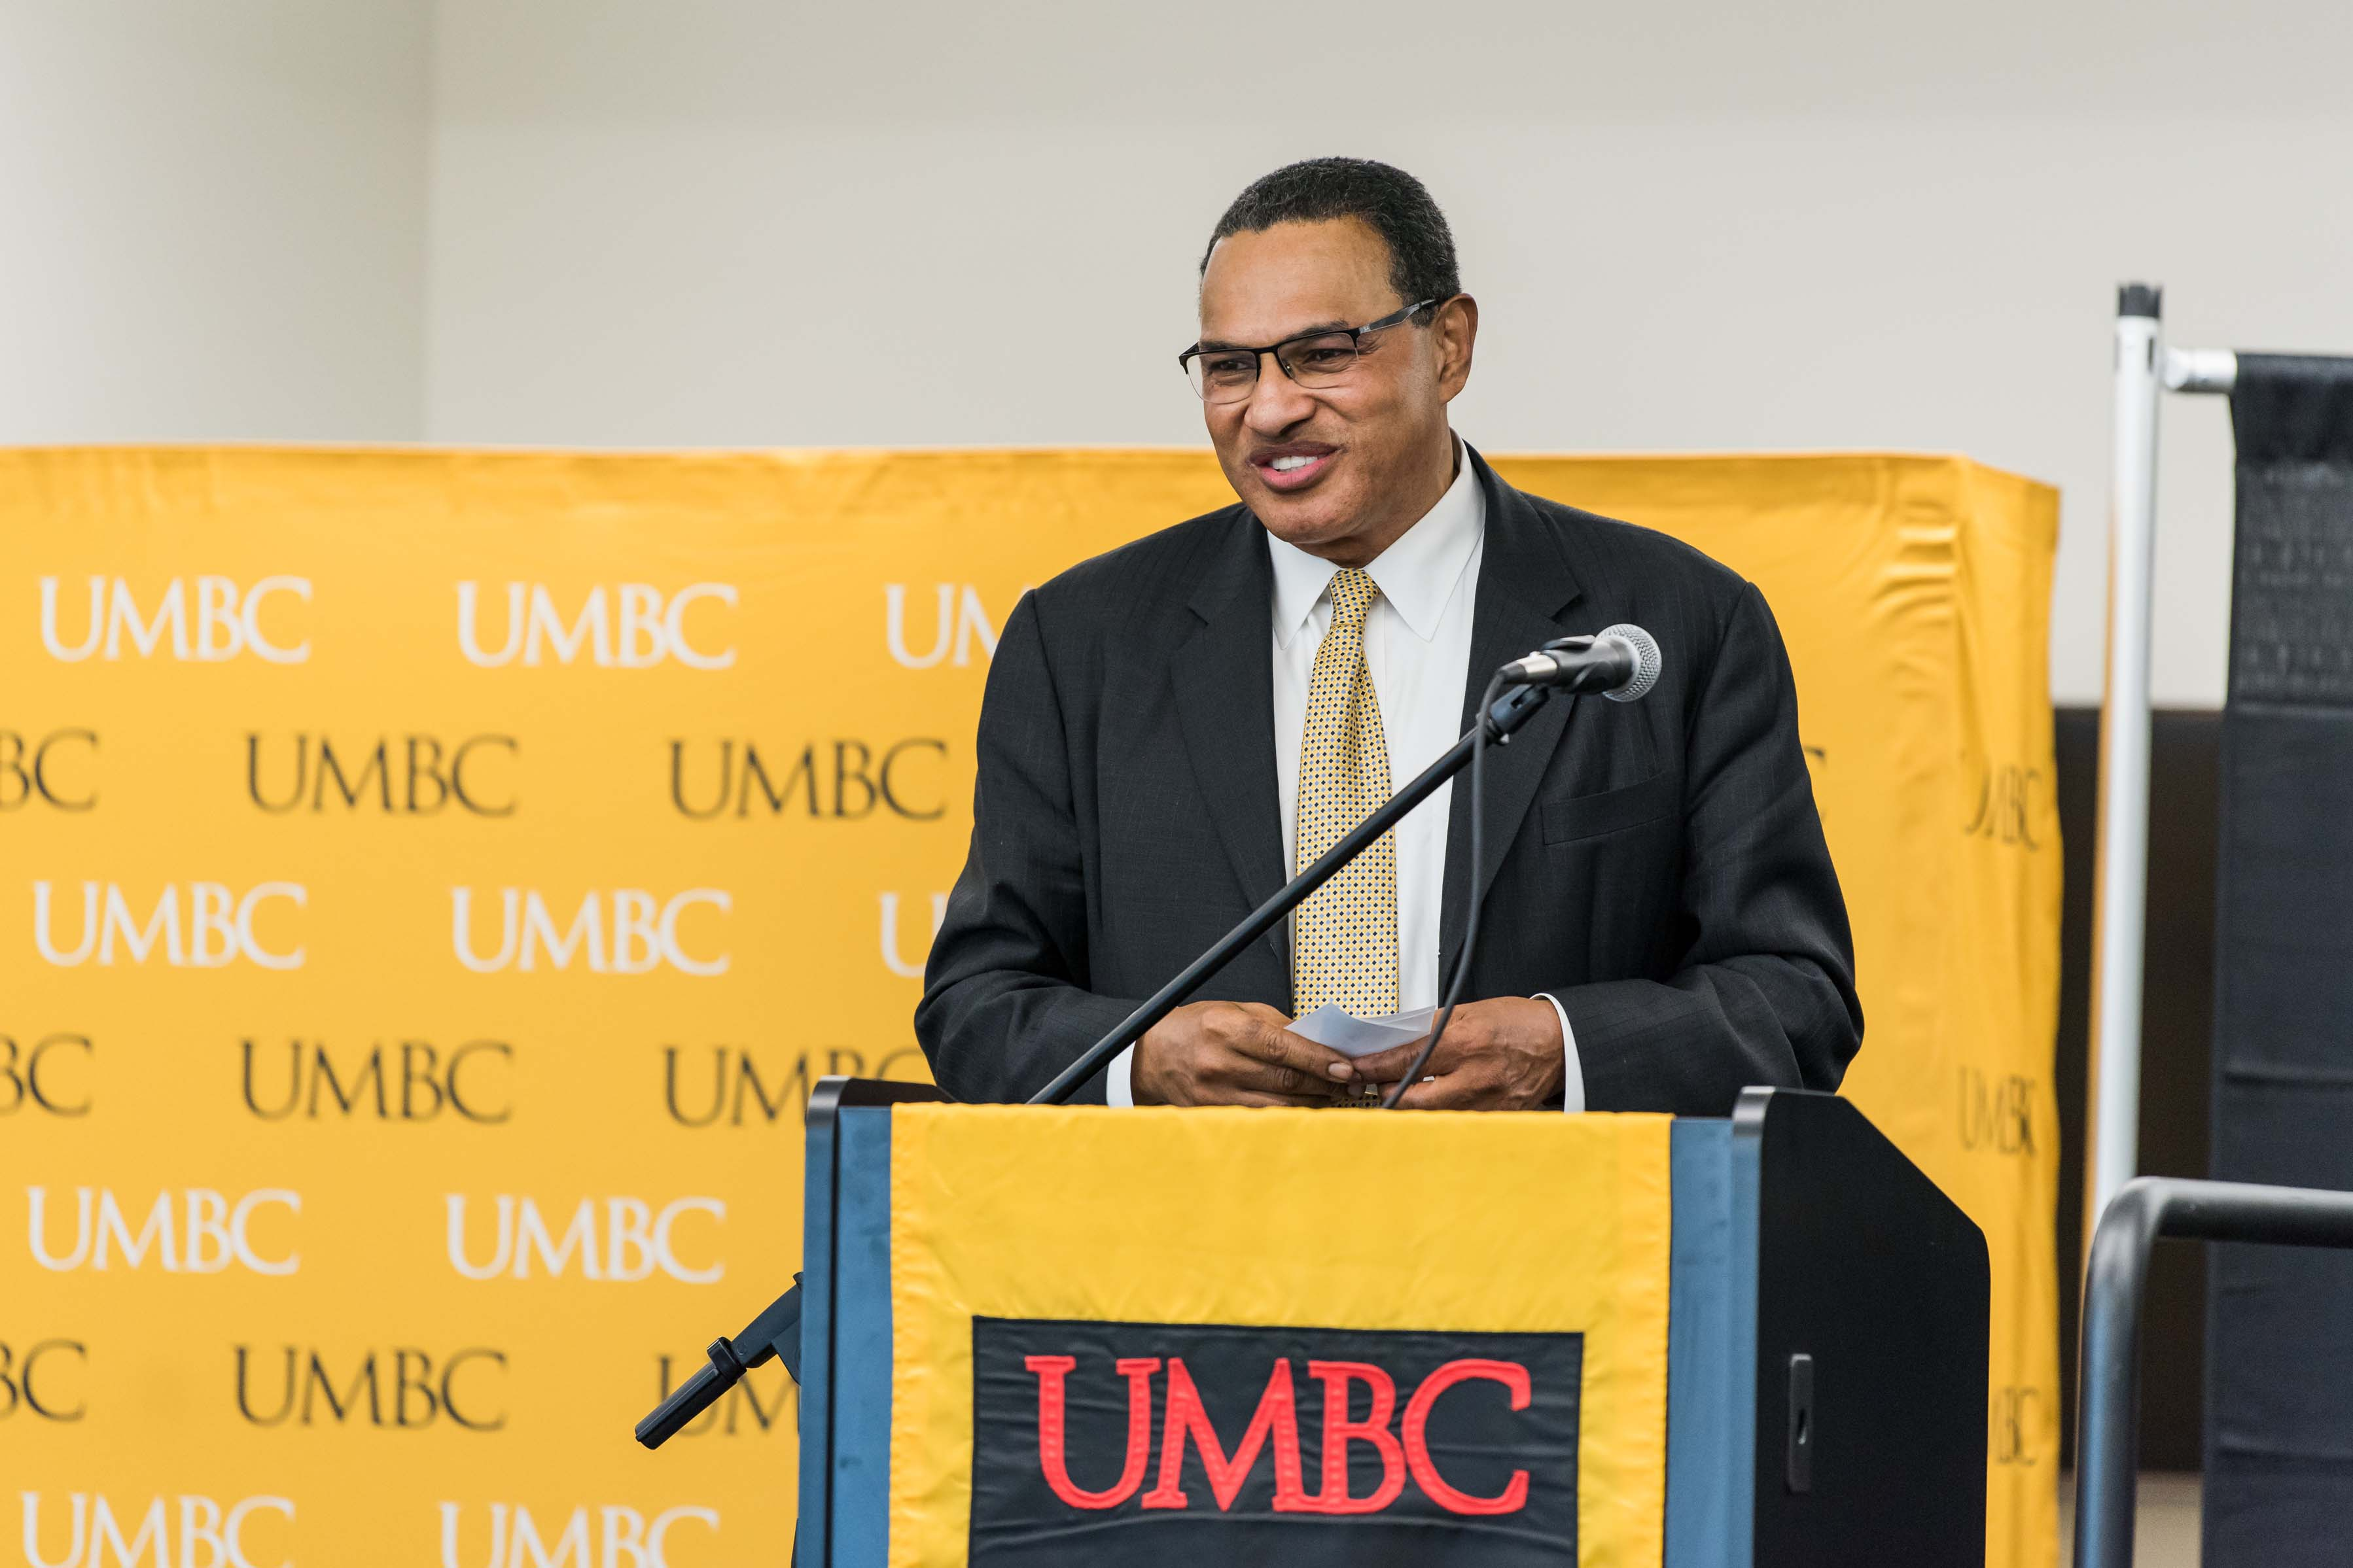 Hrabowski gives speech at Wisdom Institute lunch